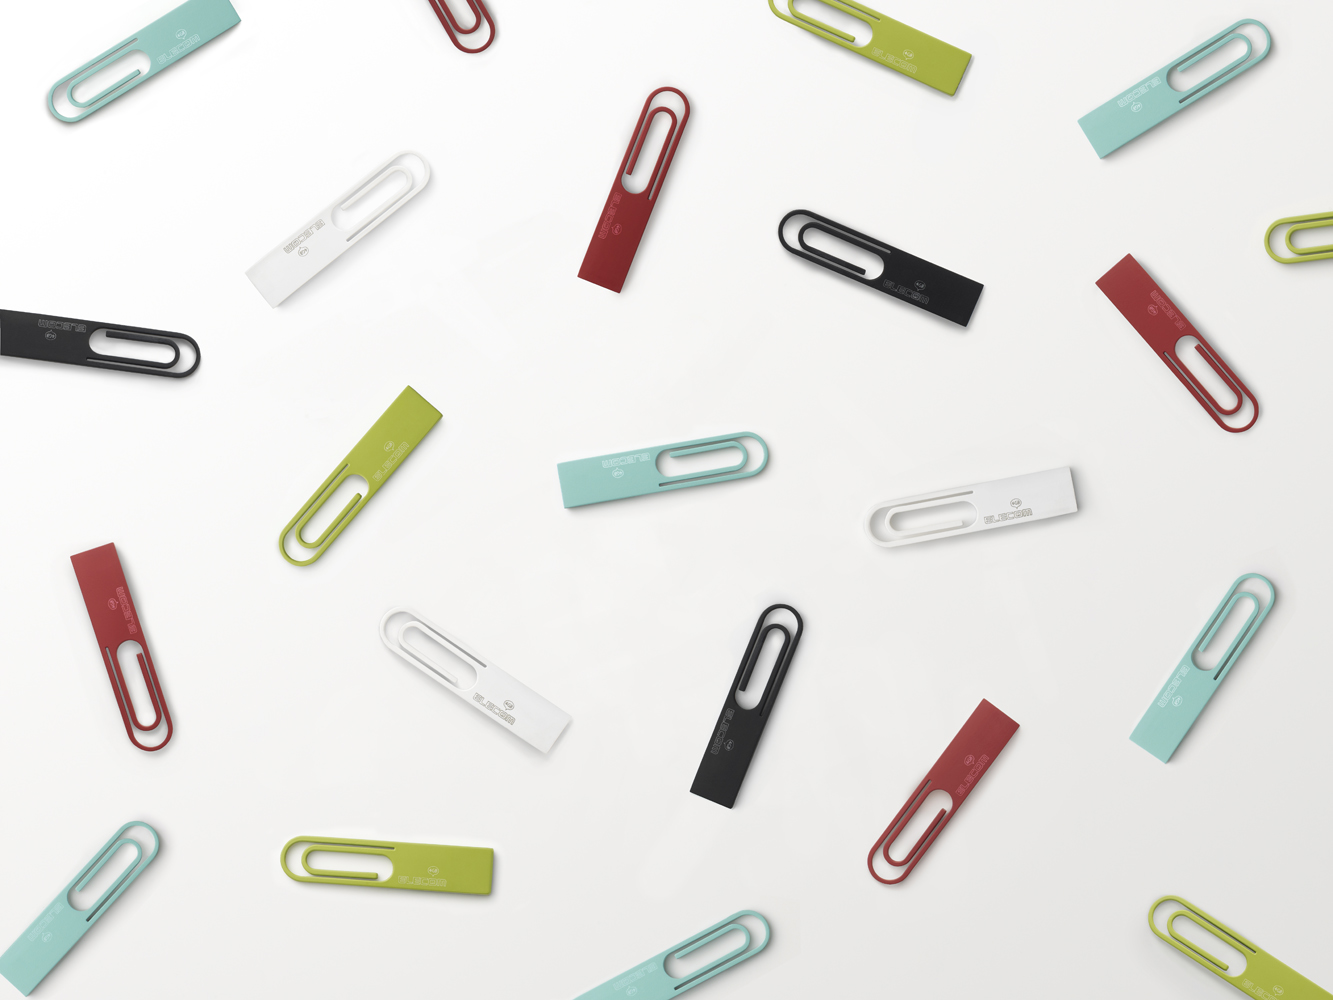 USB flash drive by ELECOM